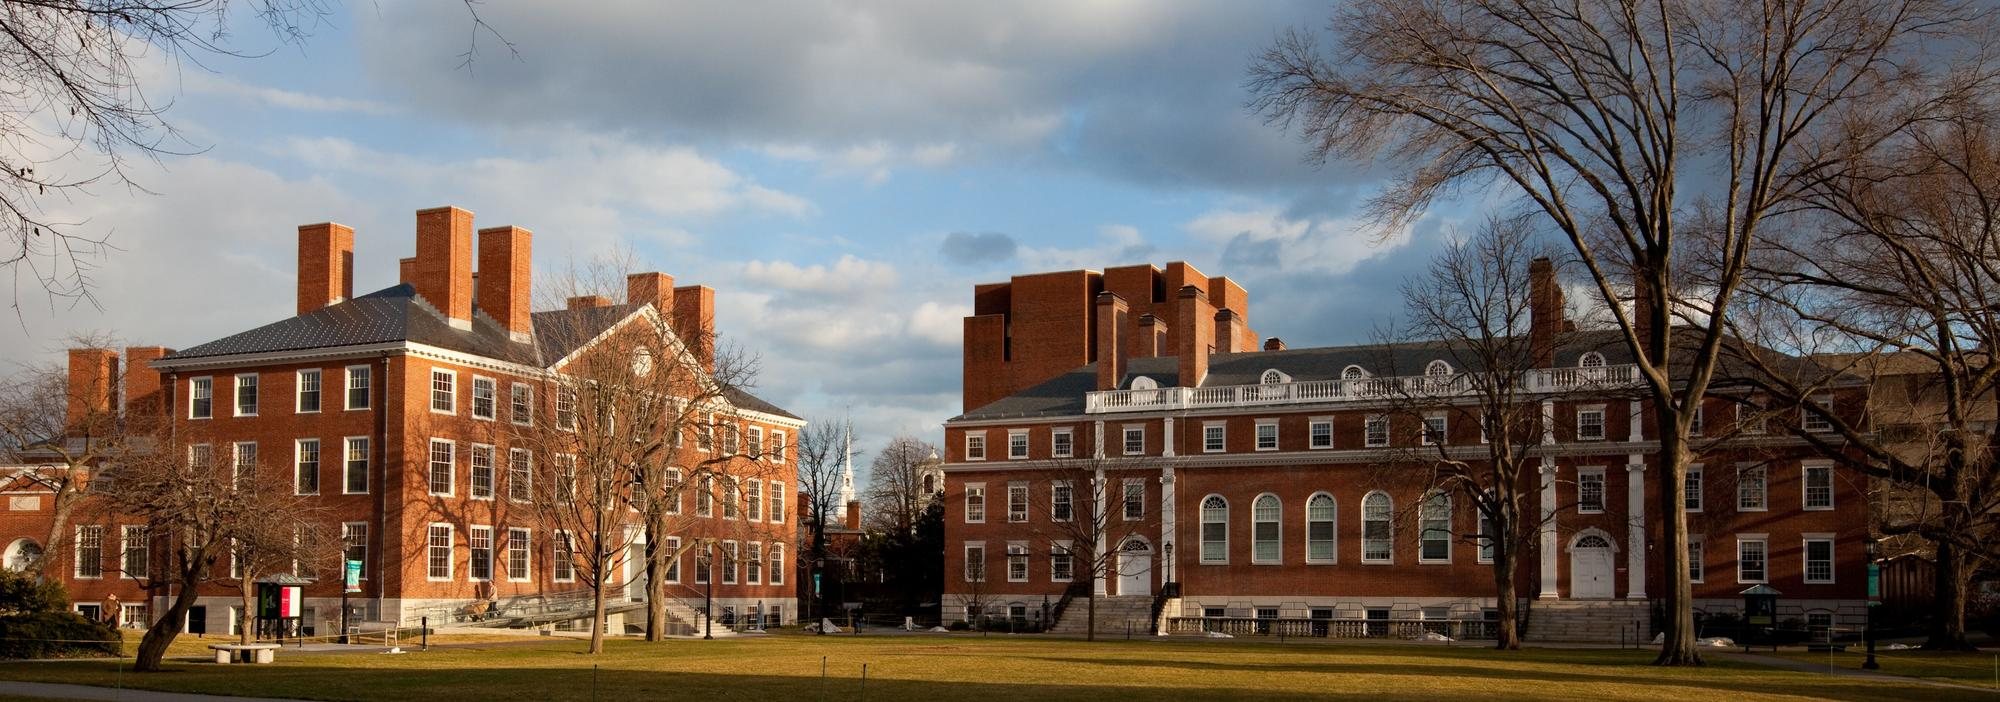 What does it take to get into Harvard University?